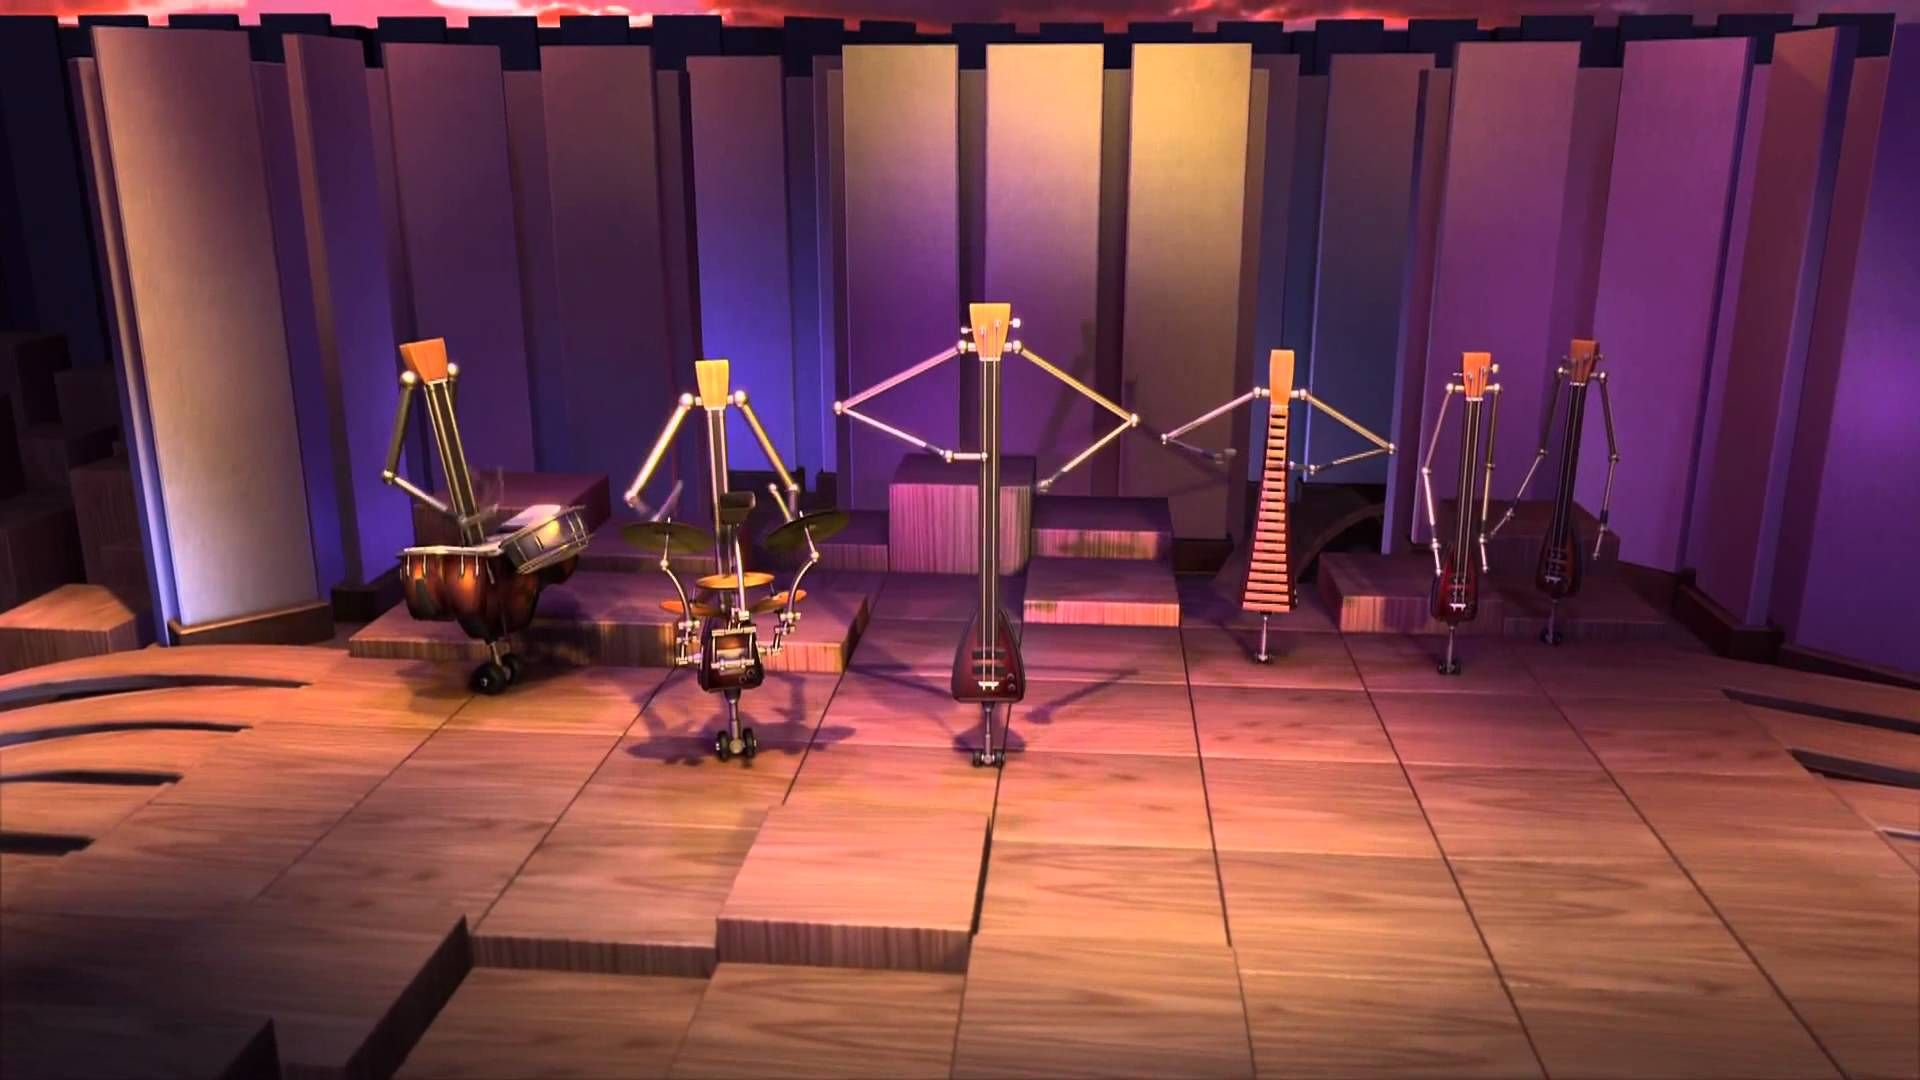 Animusic - Pogo Sticks [HD] | Music | Pogo stick, Music classroom